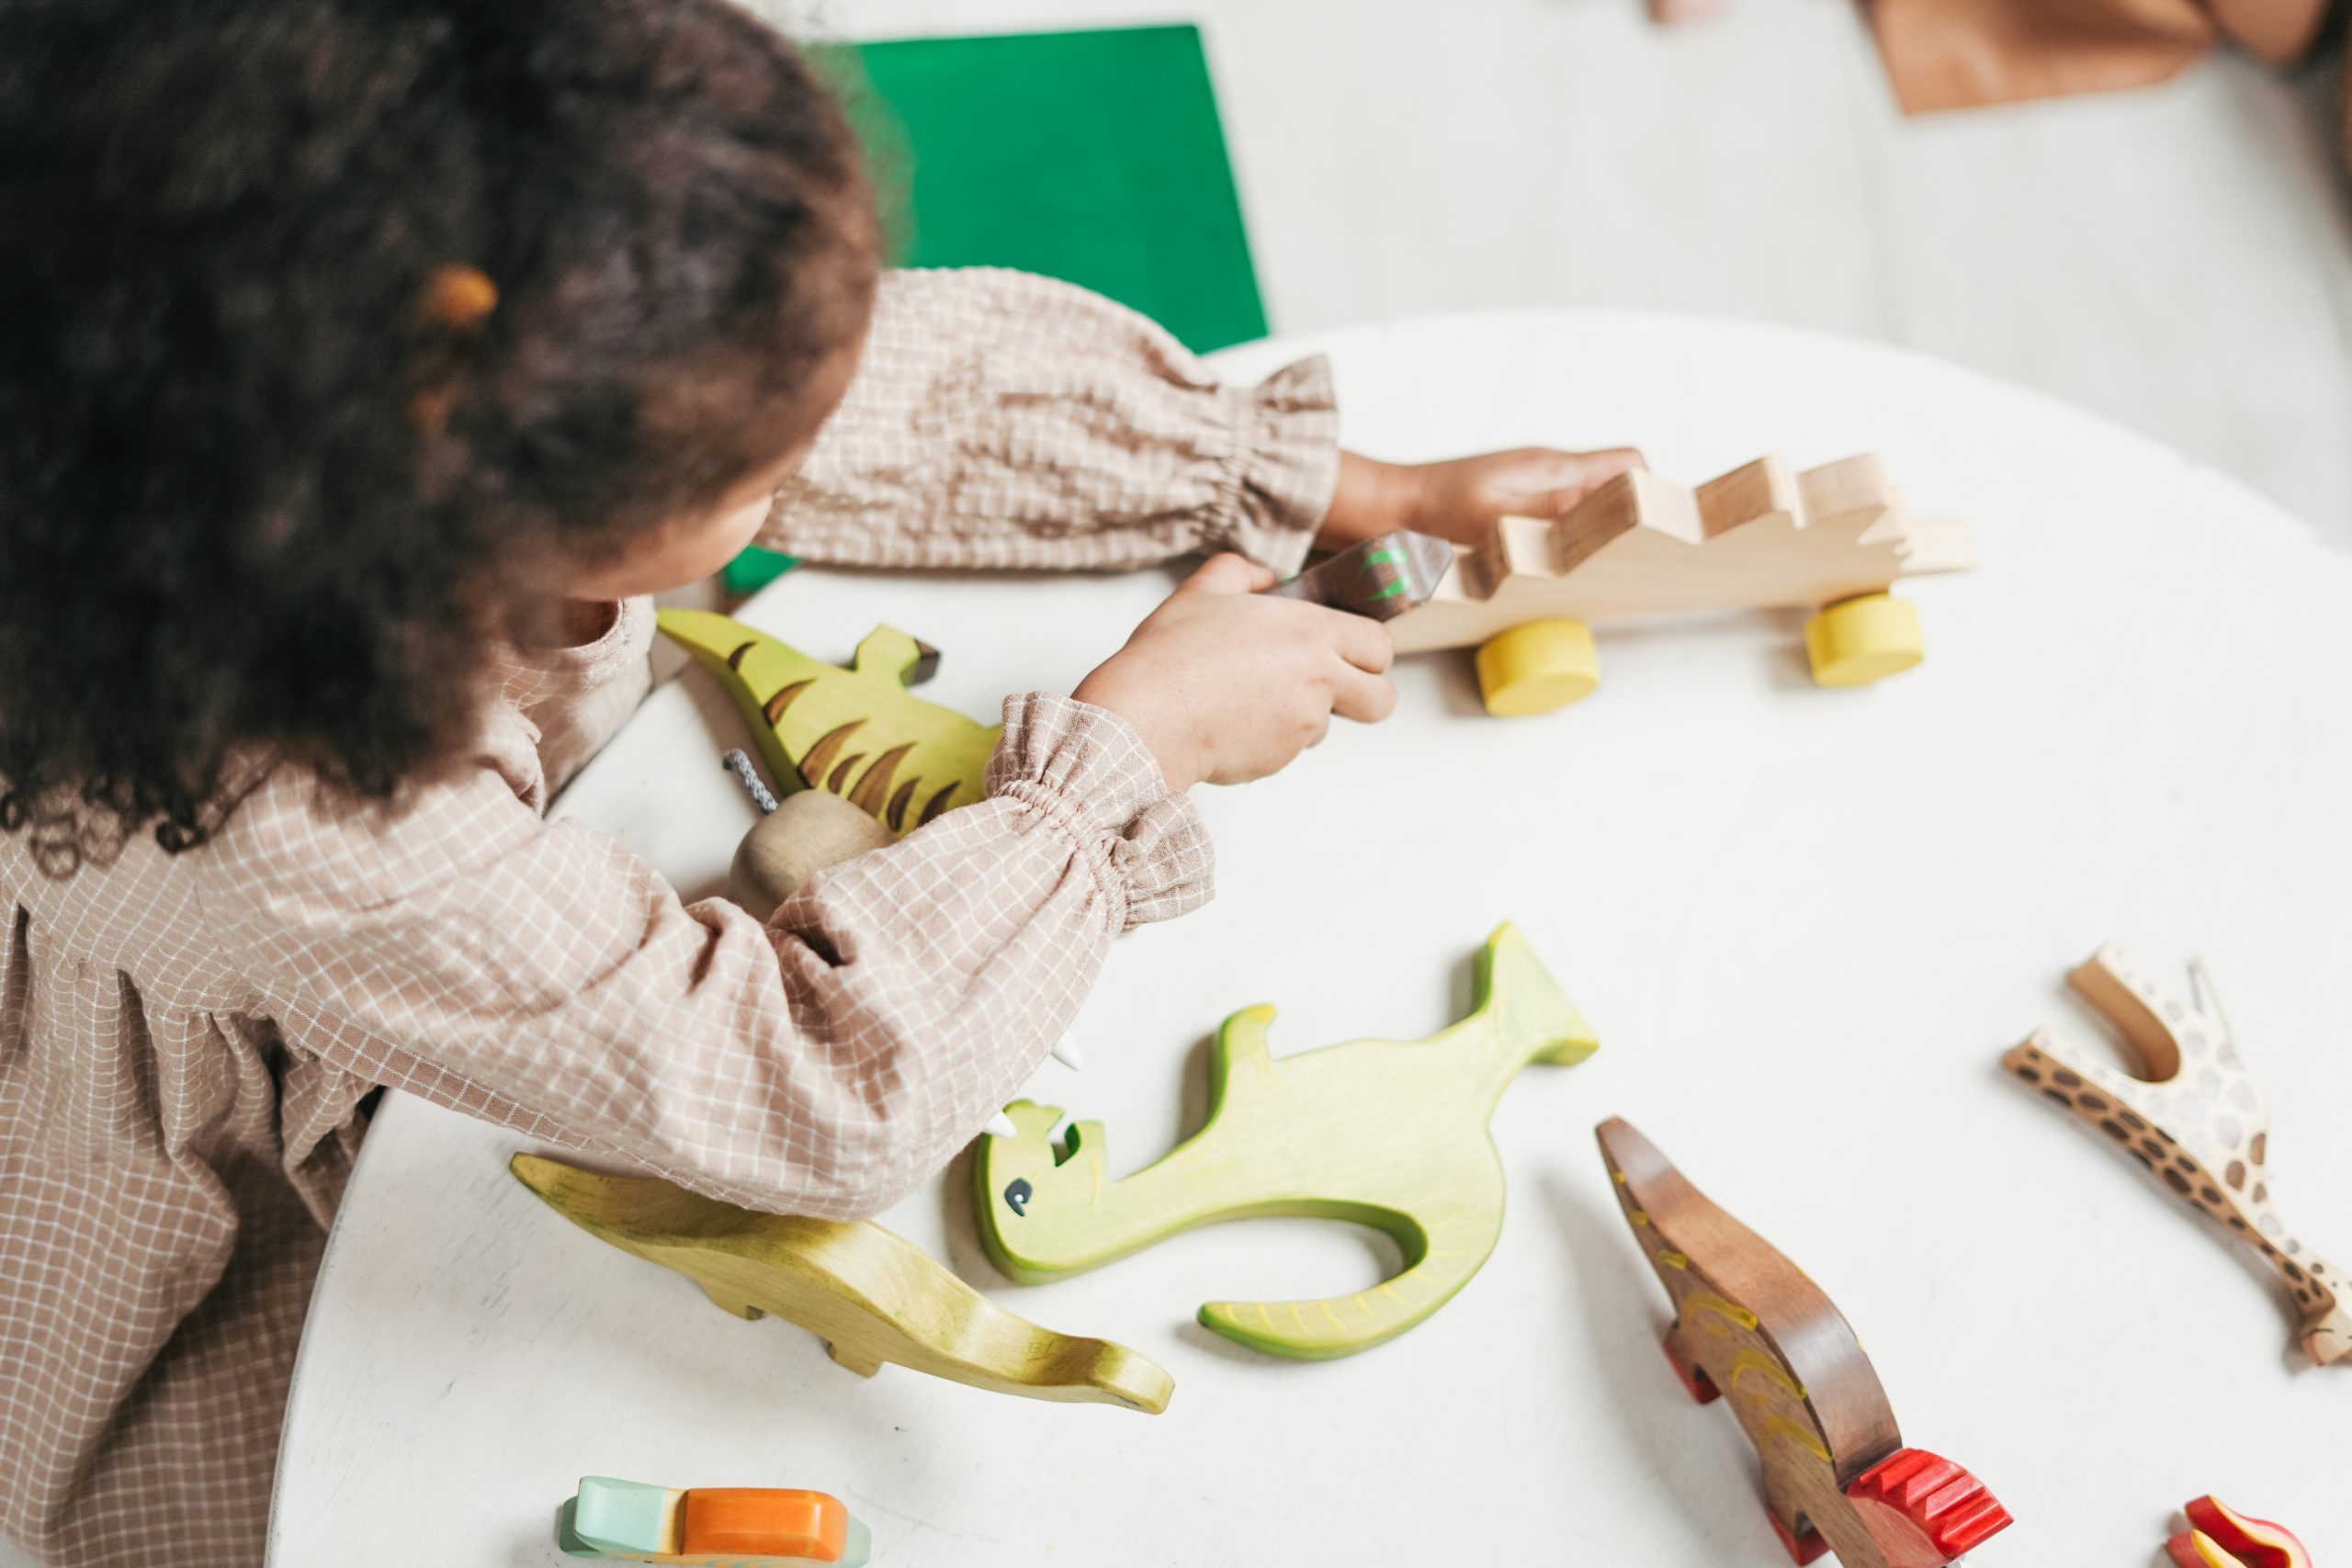 Canva - Overhead Photo of Young Girl Playing with Wooden Toys on White Table